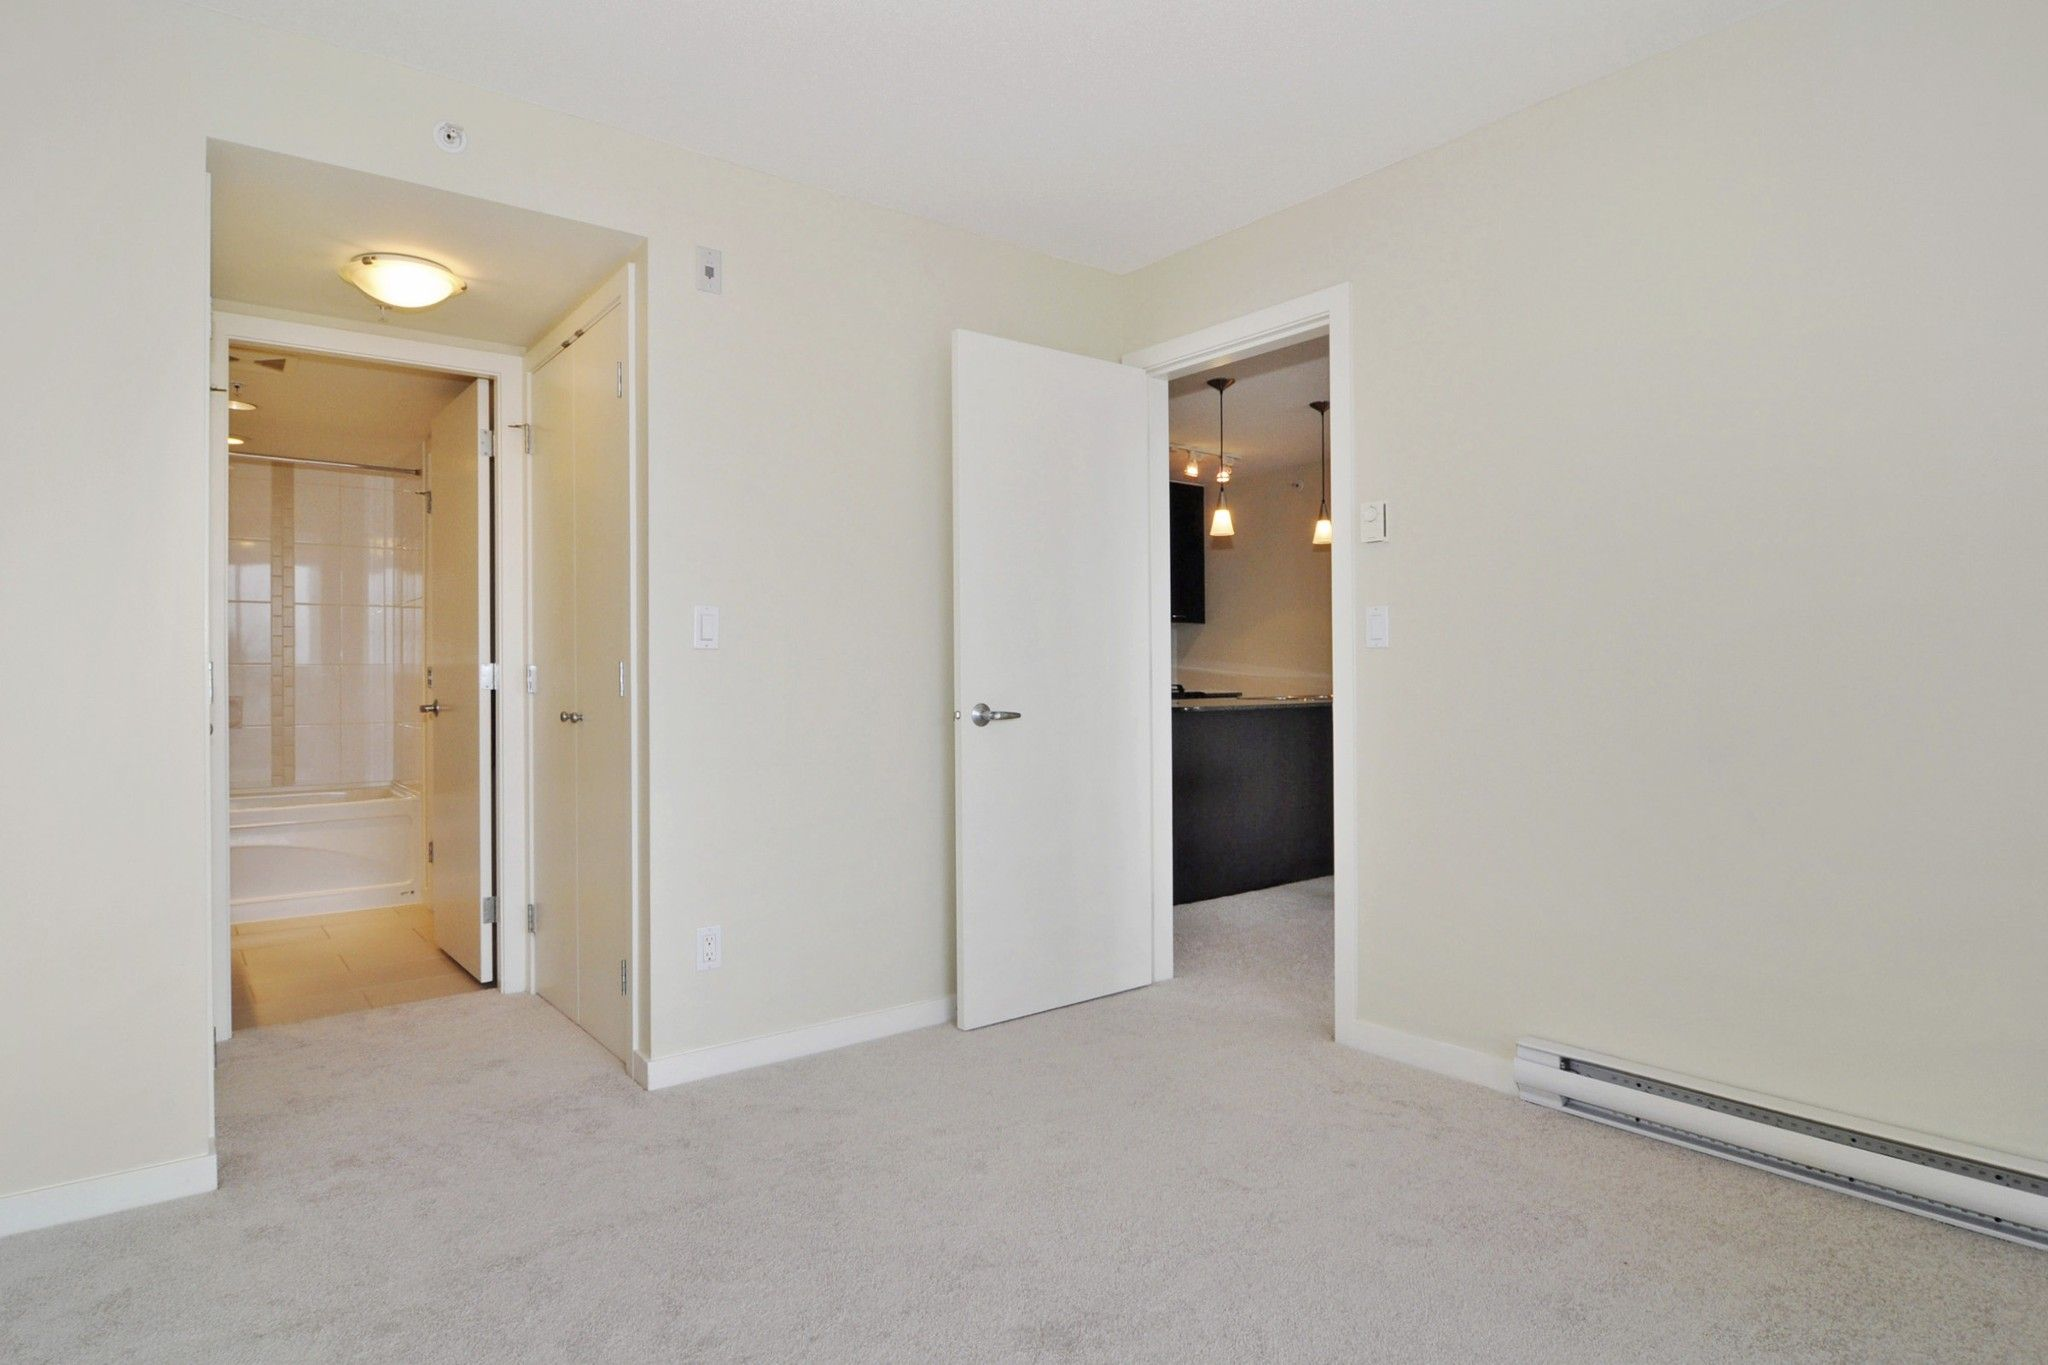 """Photo 10: Photos: 312 7138 COLLIER Street in Burnaby: Highgate Condo for sale in """"STANDFORD HOUSE"""" (Burnaby South)  : MLS®# R2224760"""